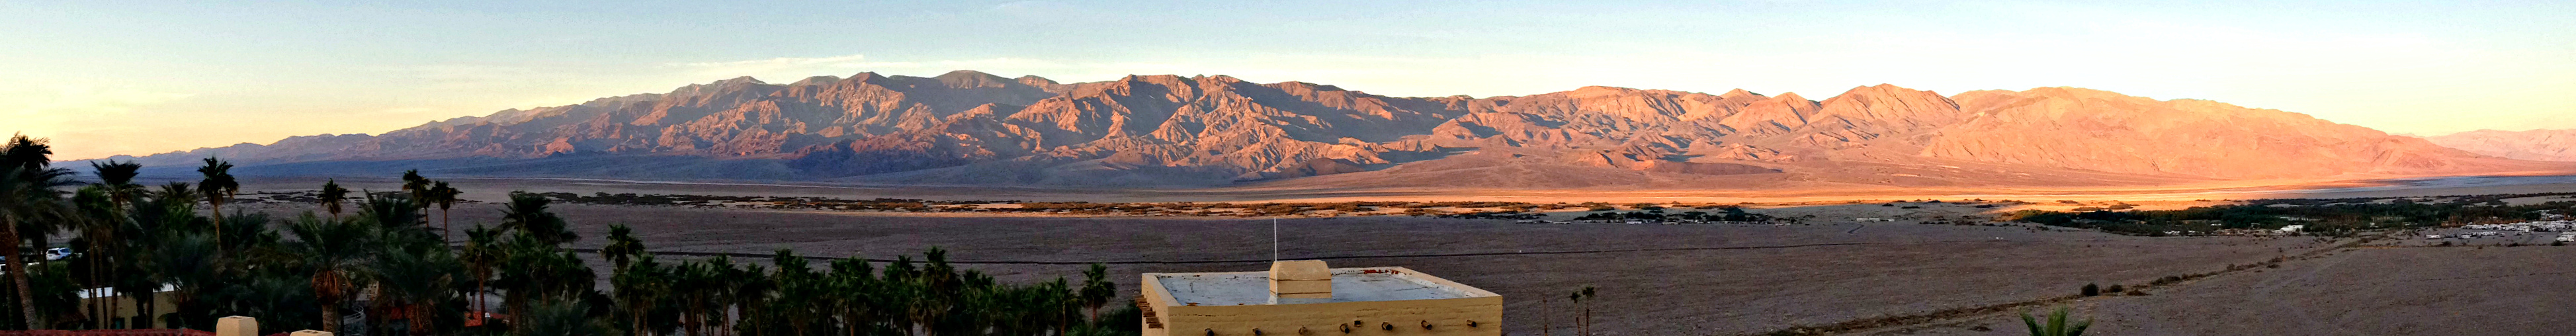 Early morning looking west to the Panamint Mts. from our Inn at Furnace Point.